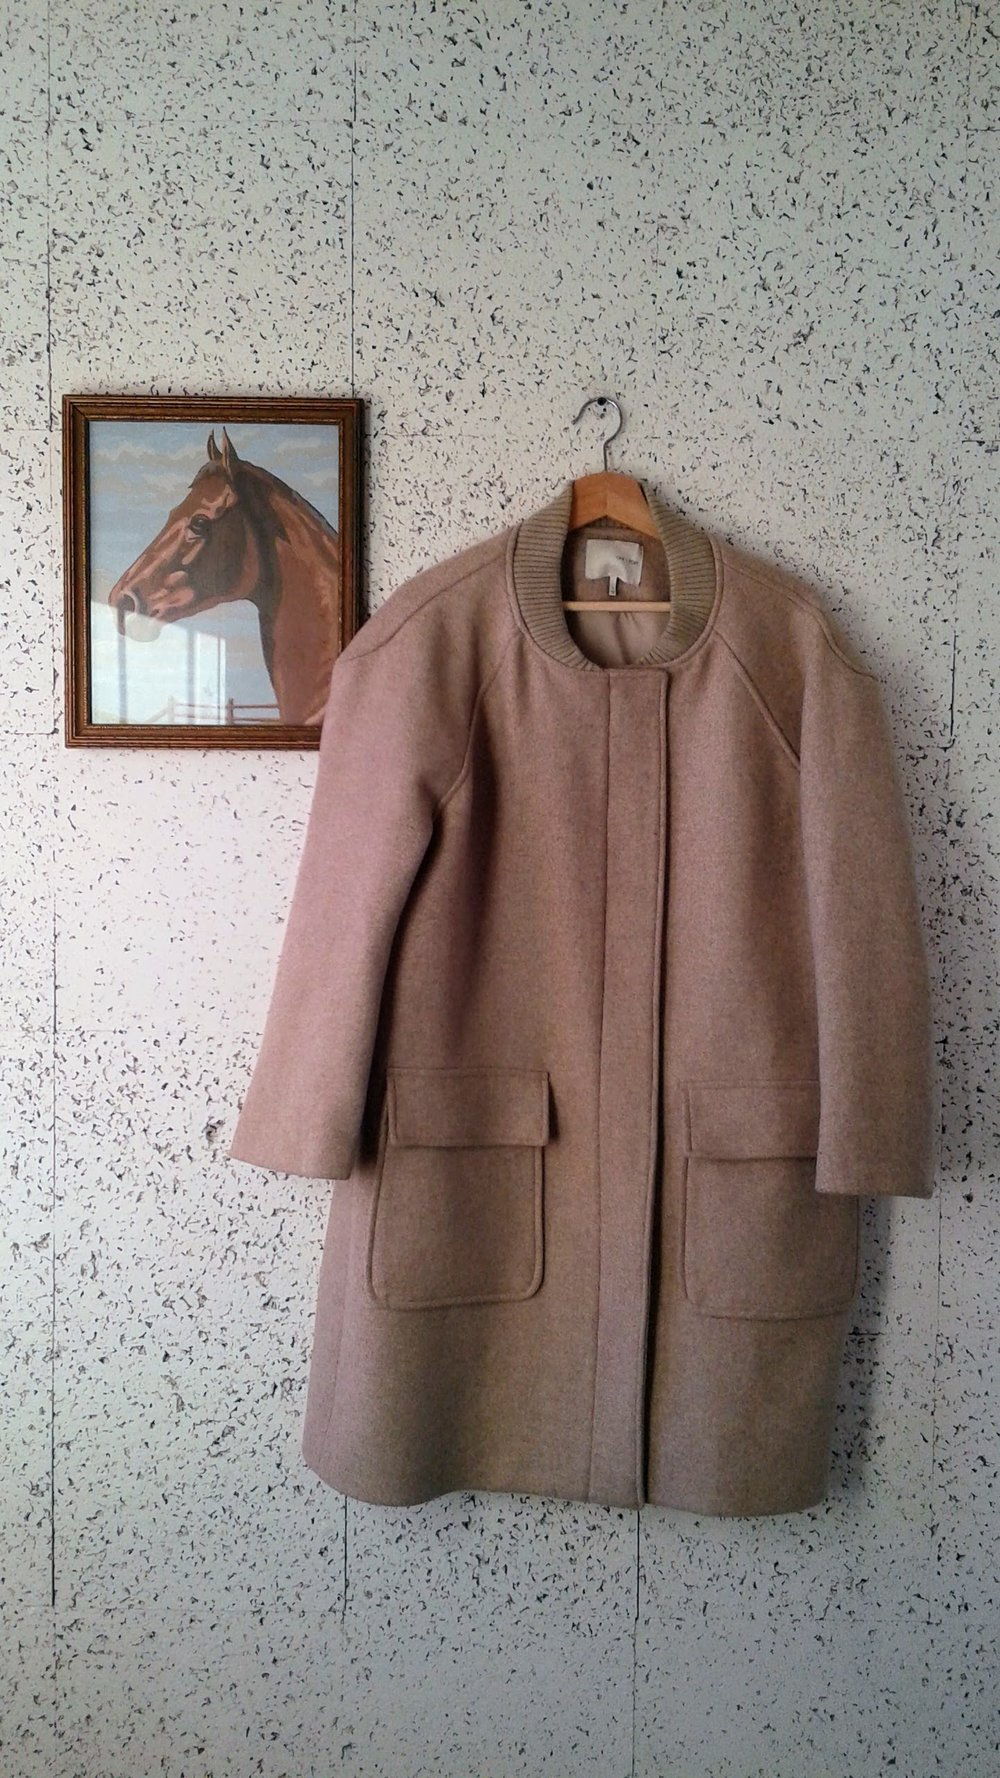 Oak+Fort coat; Size S, $145